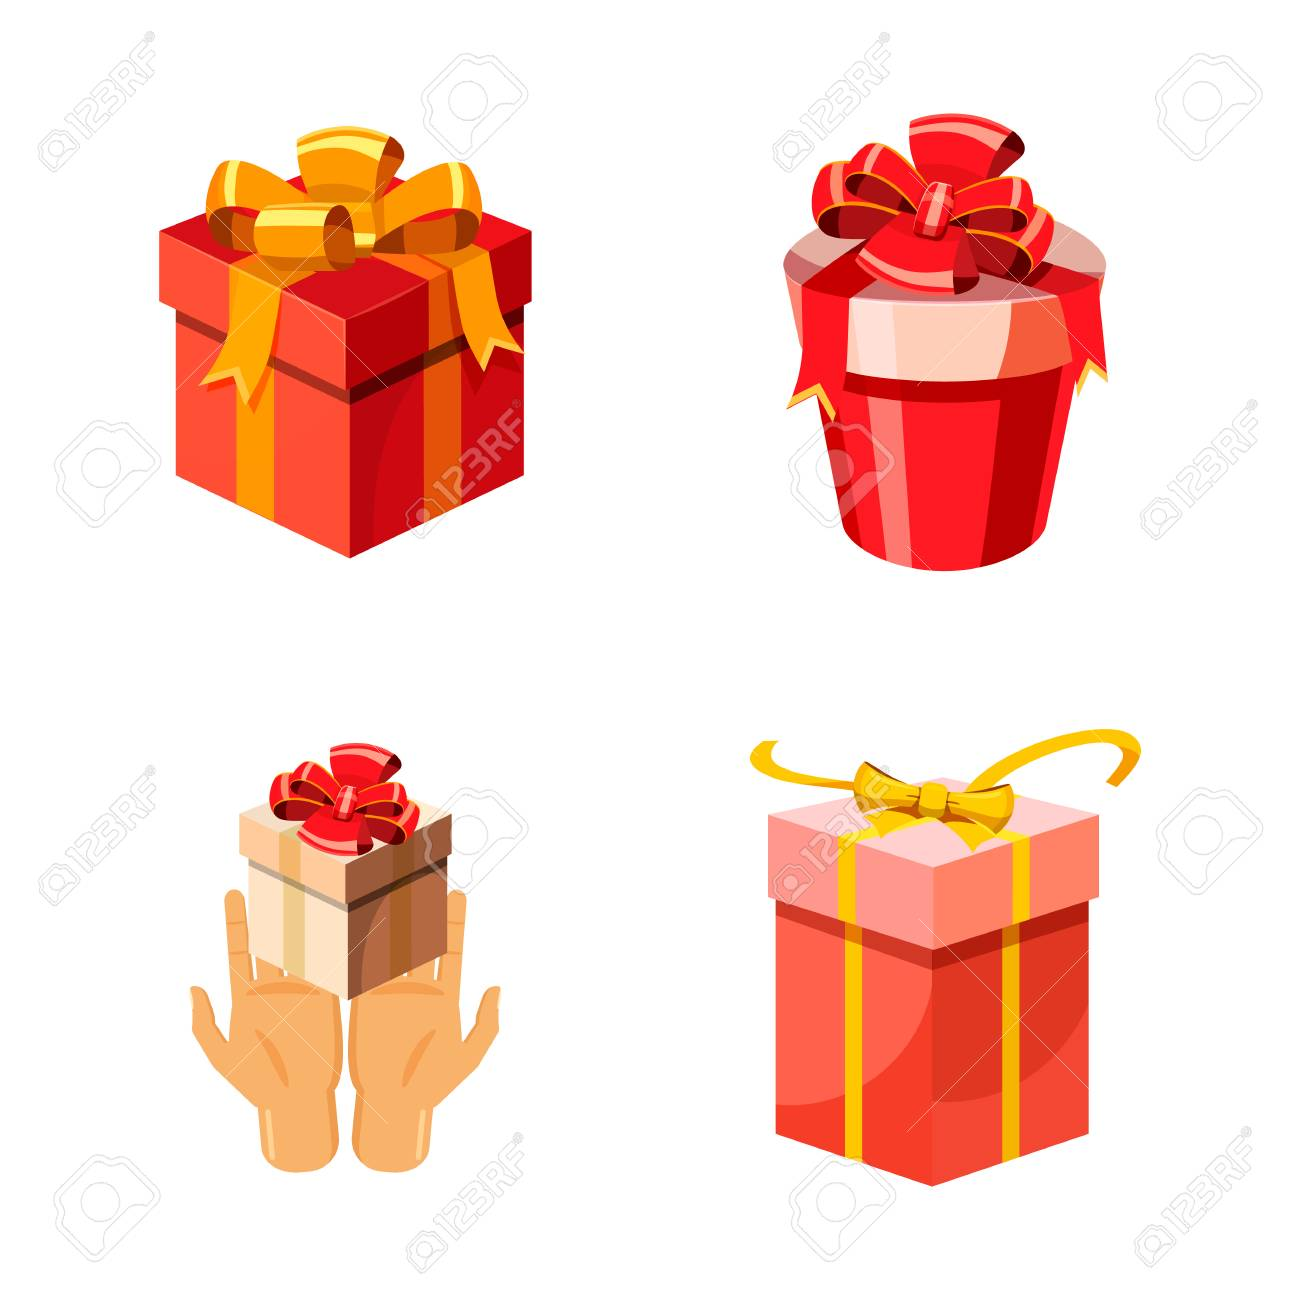 Gift Box Icon Set Cartoon Set Of Gift Box Vector Icons For Web Royalty Free Cliparts Vectors And Stock Illustration Image 94527370